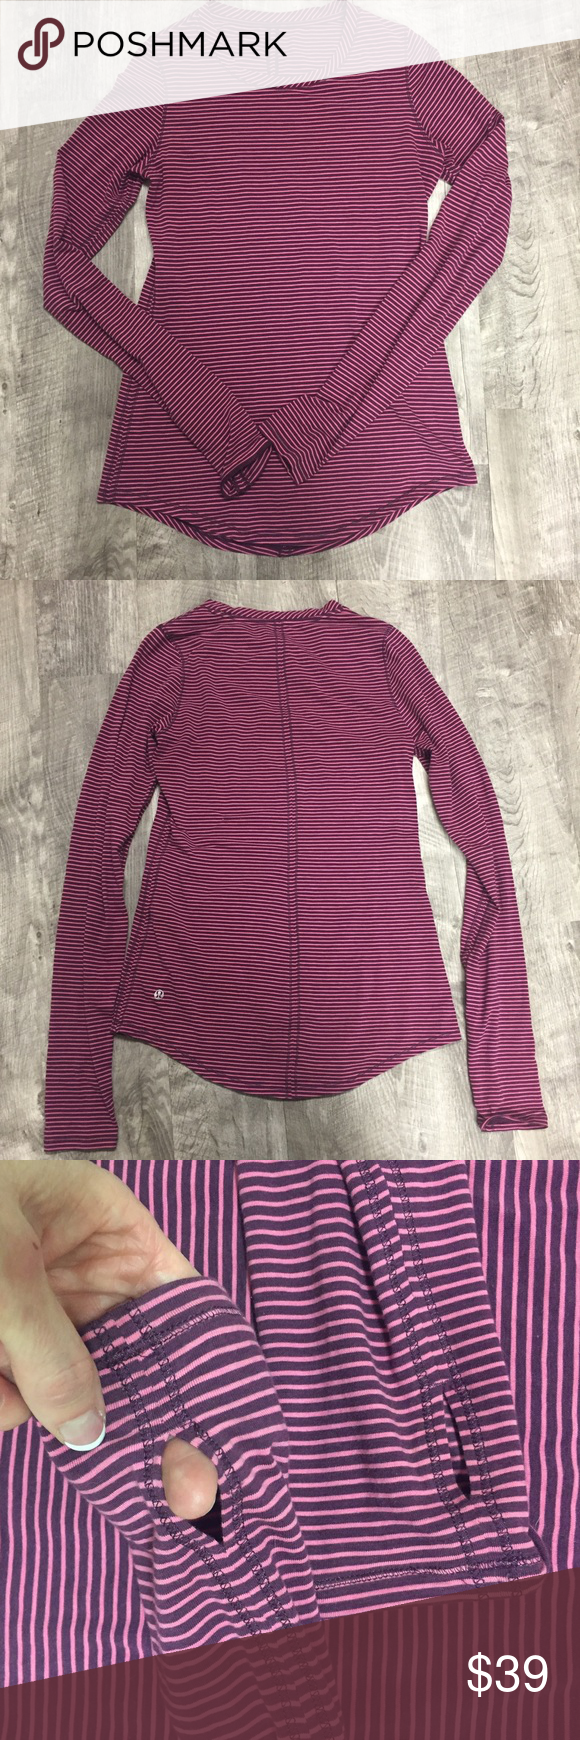 Lululemon Striped Long Sleeve Shirt Top Lululemon Striped long Sleeve top with thumbholes. Thinner material. No size dot but it appears to be an 8 (possibly 10).  Please see actual measurements though. Good used condition. Shows normal wash wear but no holes or stains. lululemon athletica Tops Tees - Long Sleeve